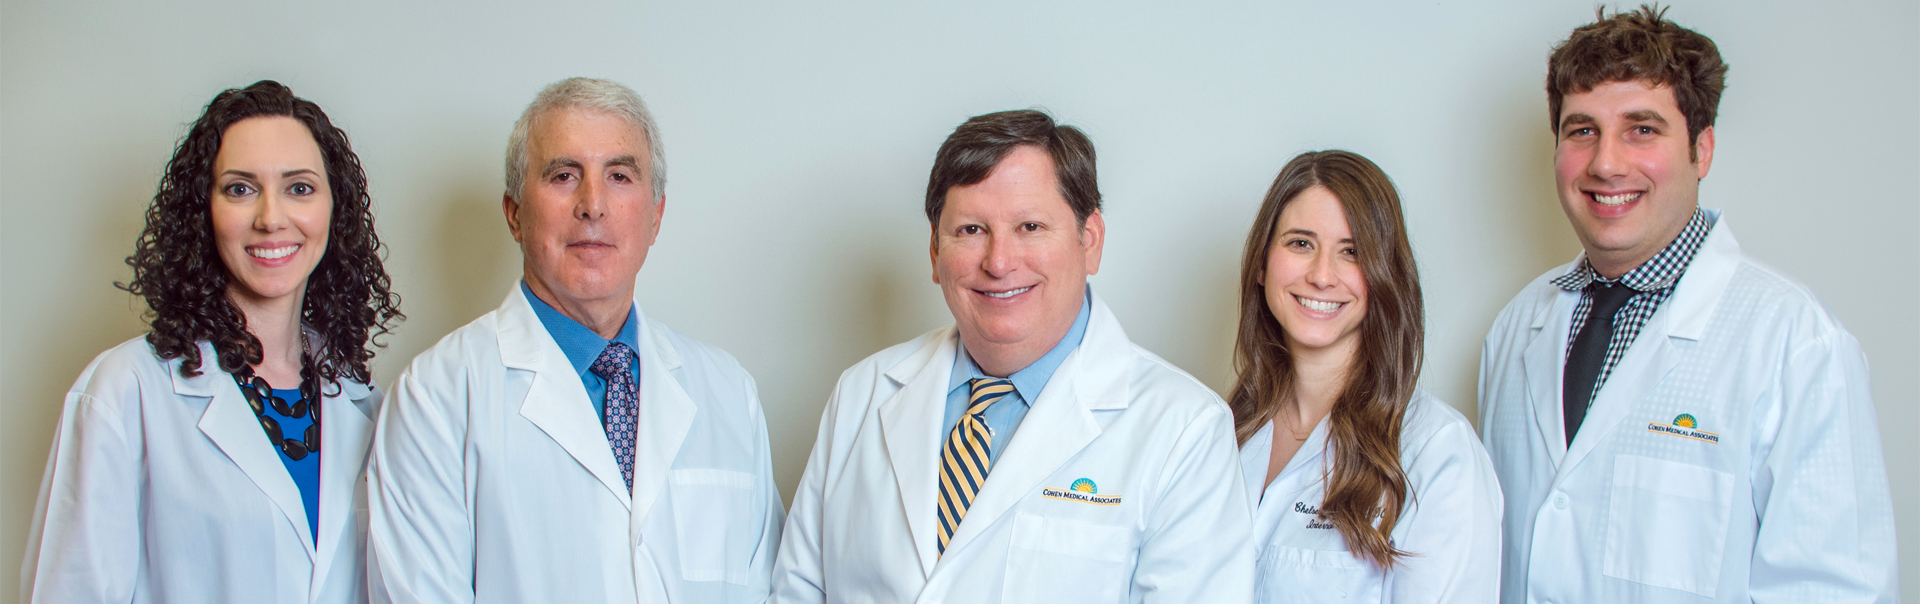 delray beach primary care doctors